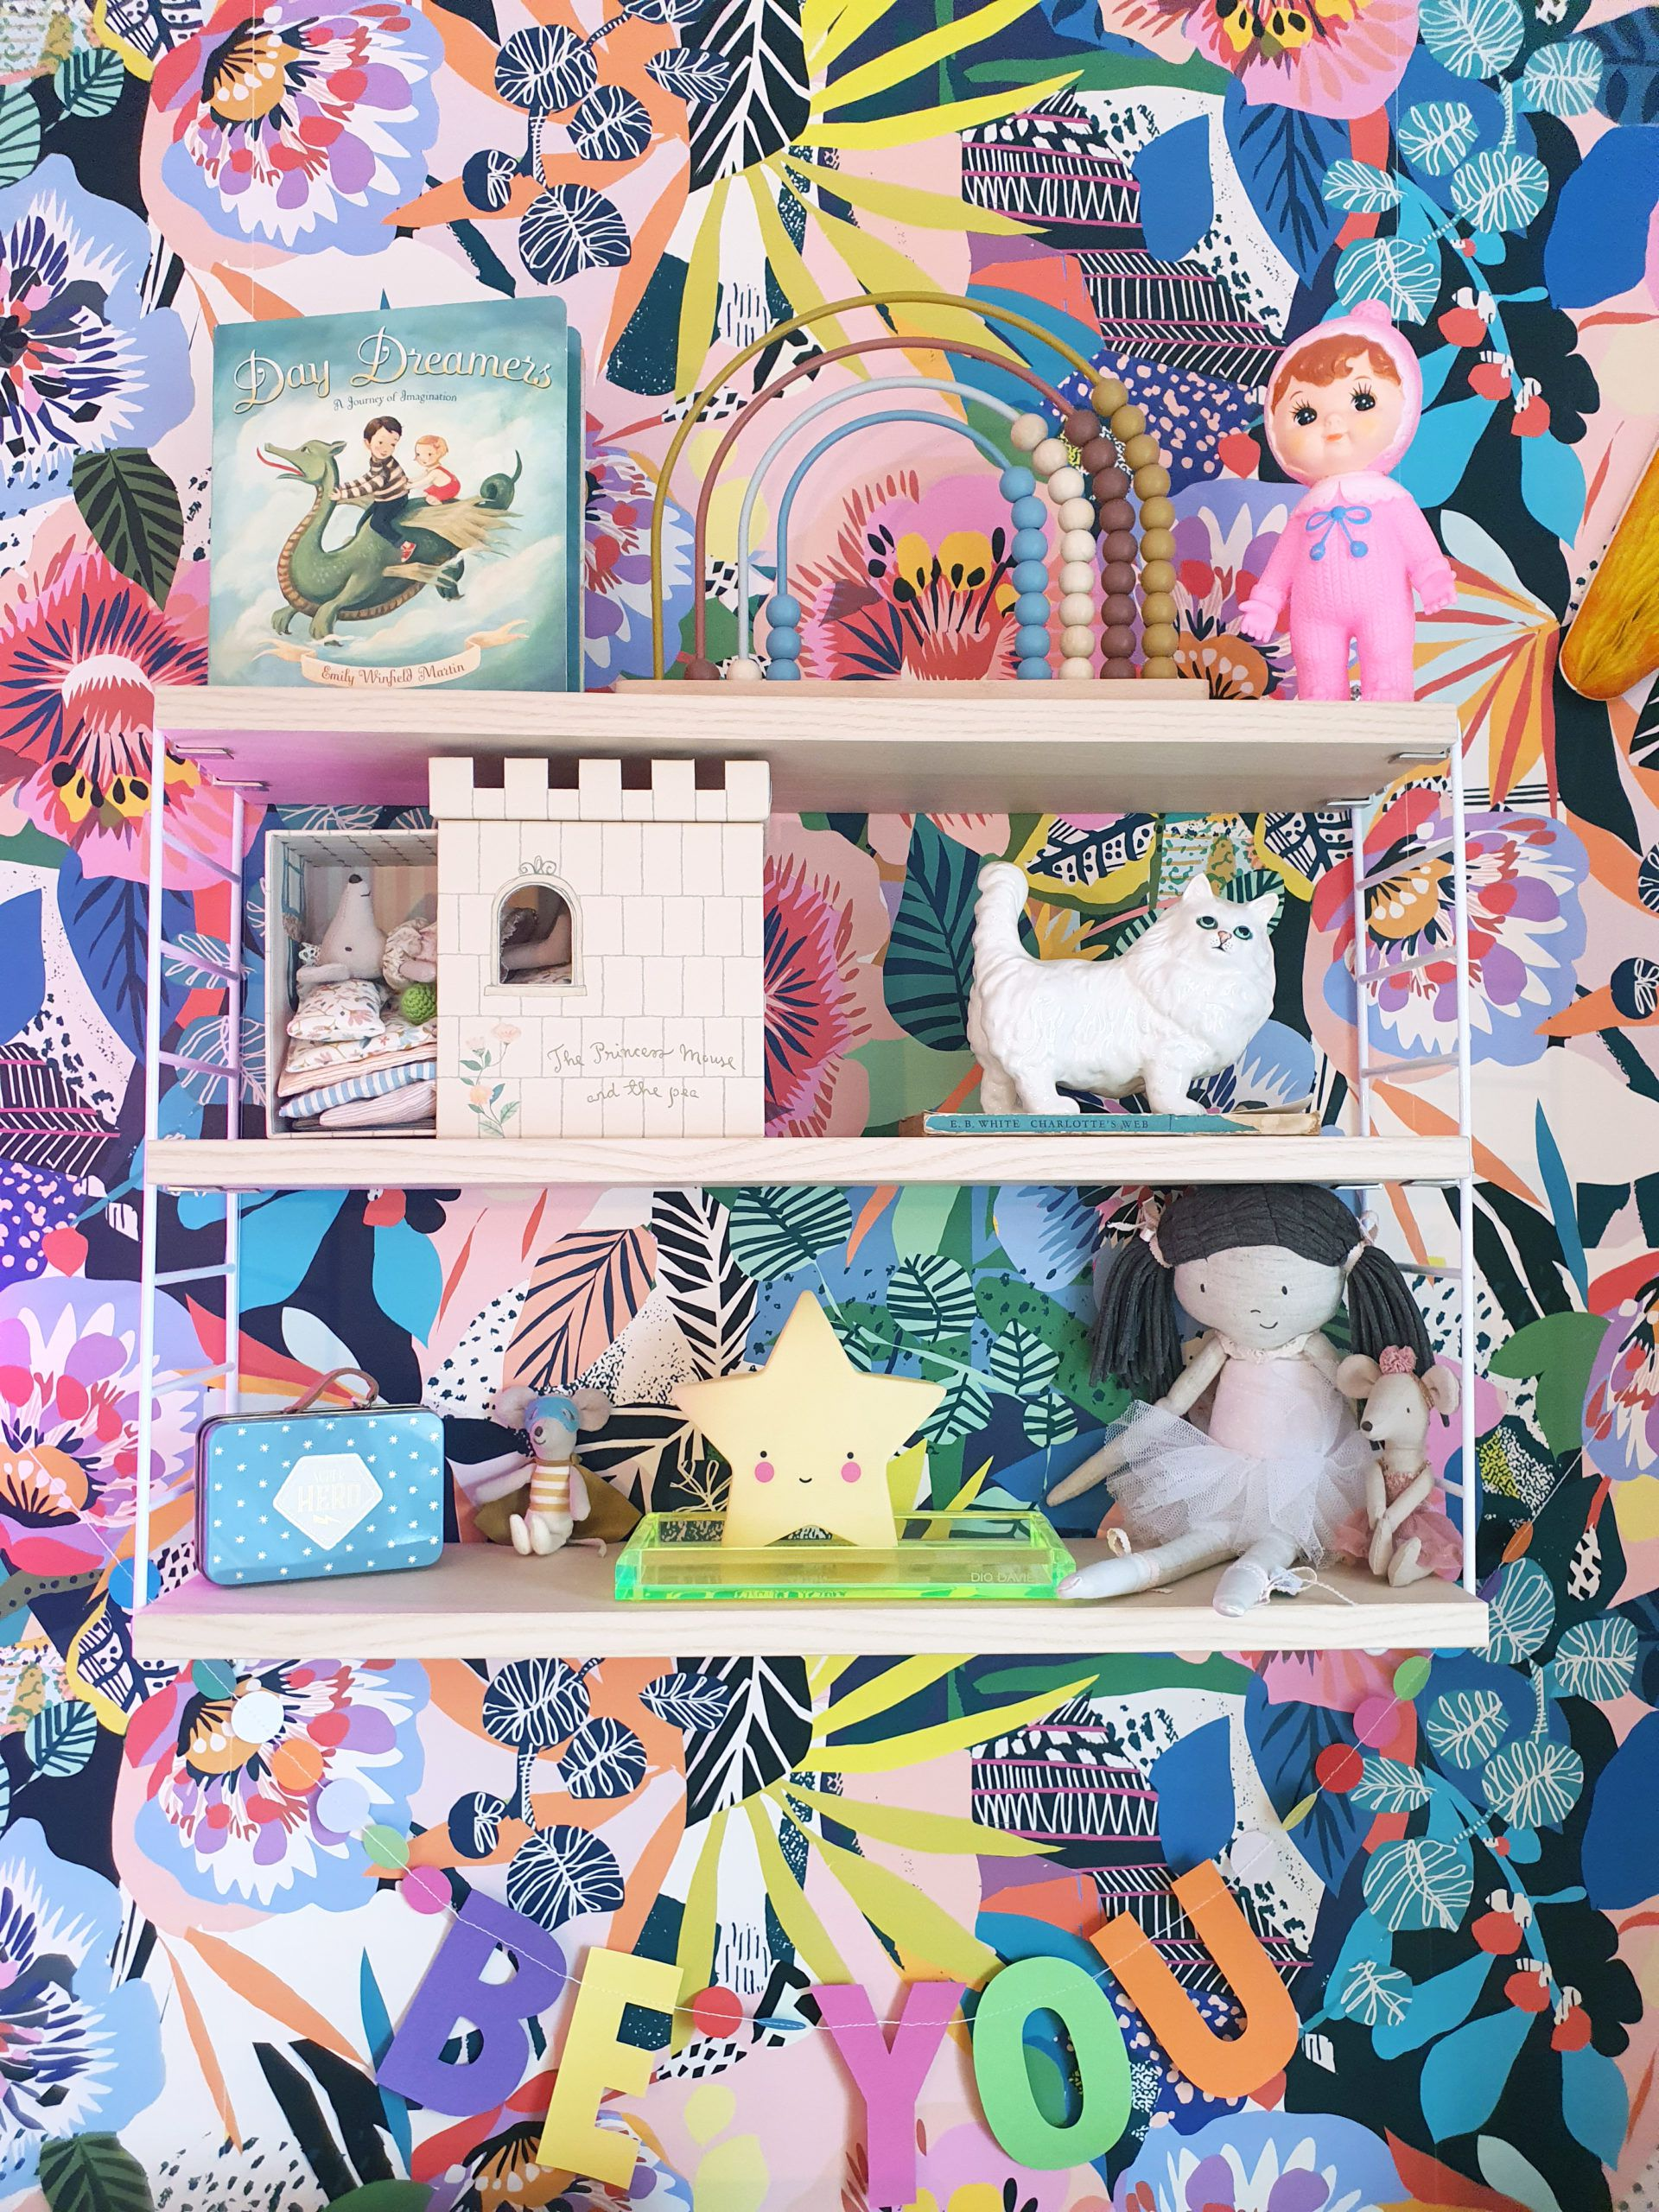 Summer Garden Wallpaper behind shelves with various items and a sign that says BE YOU under the shelves